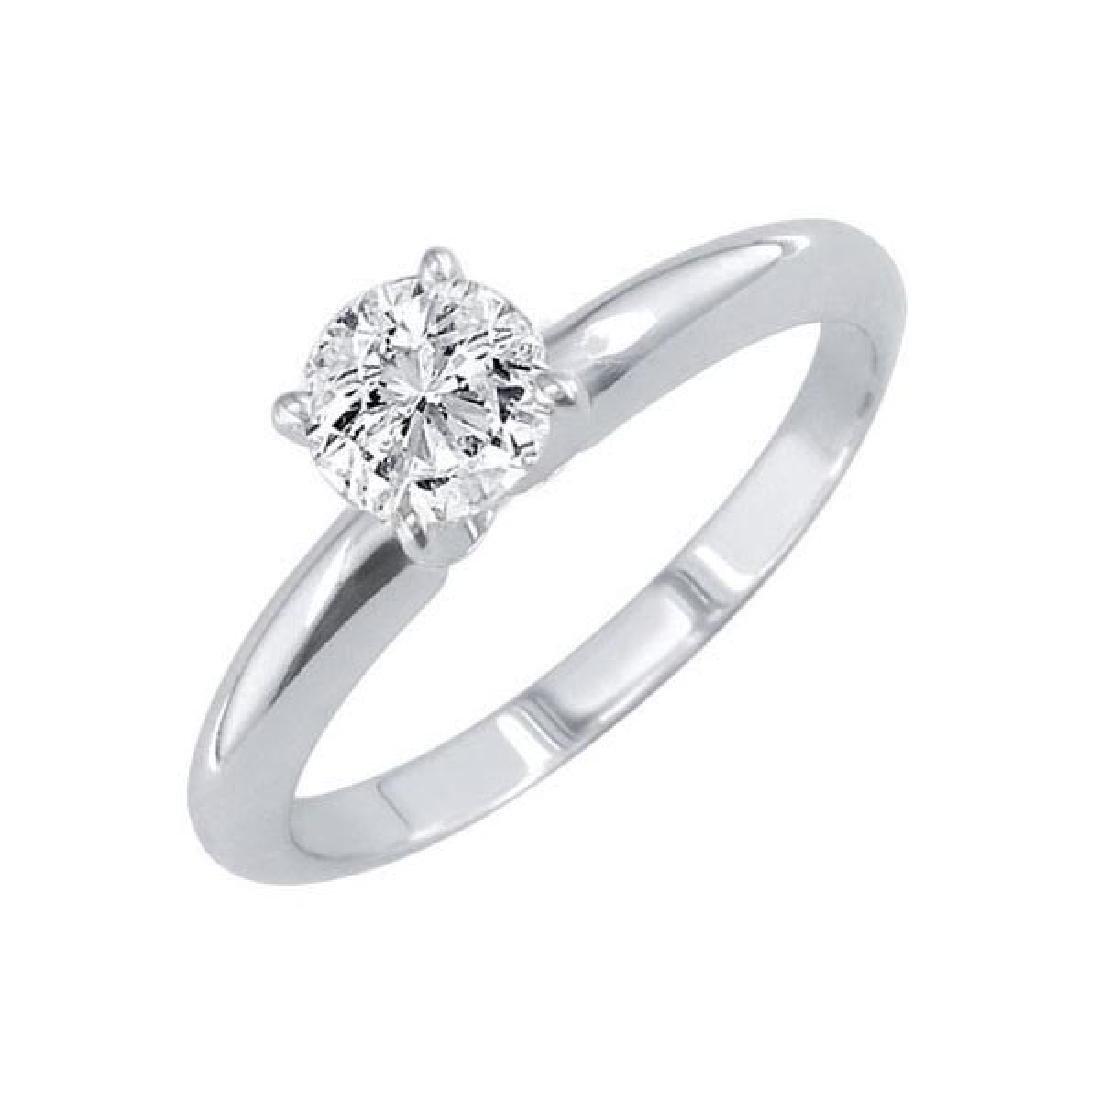 Certified 1.2 CTW Round Diamond Solitaire 14k Ring D/SI